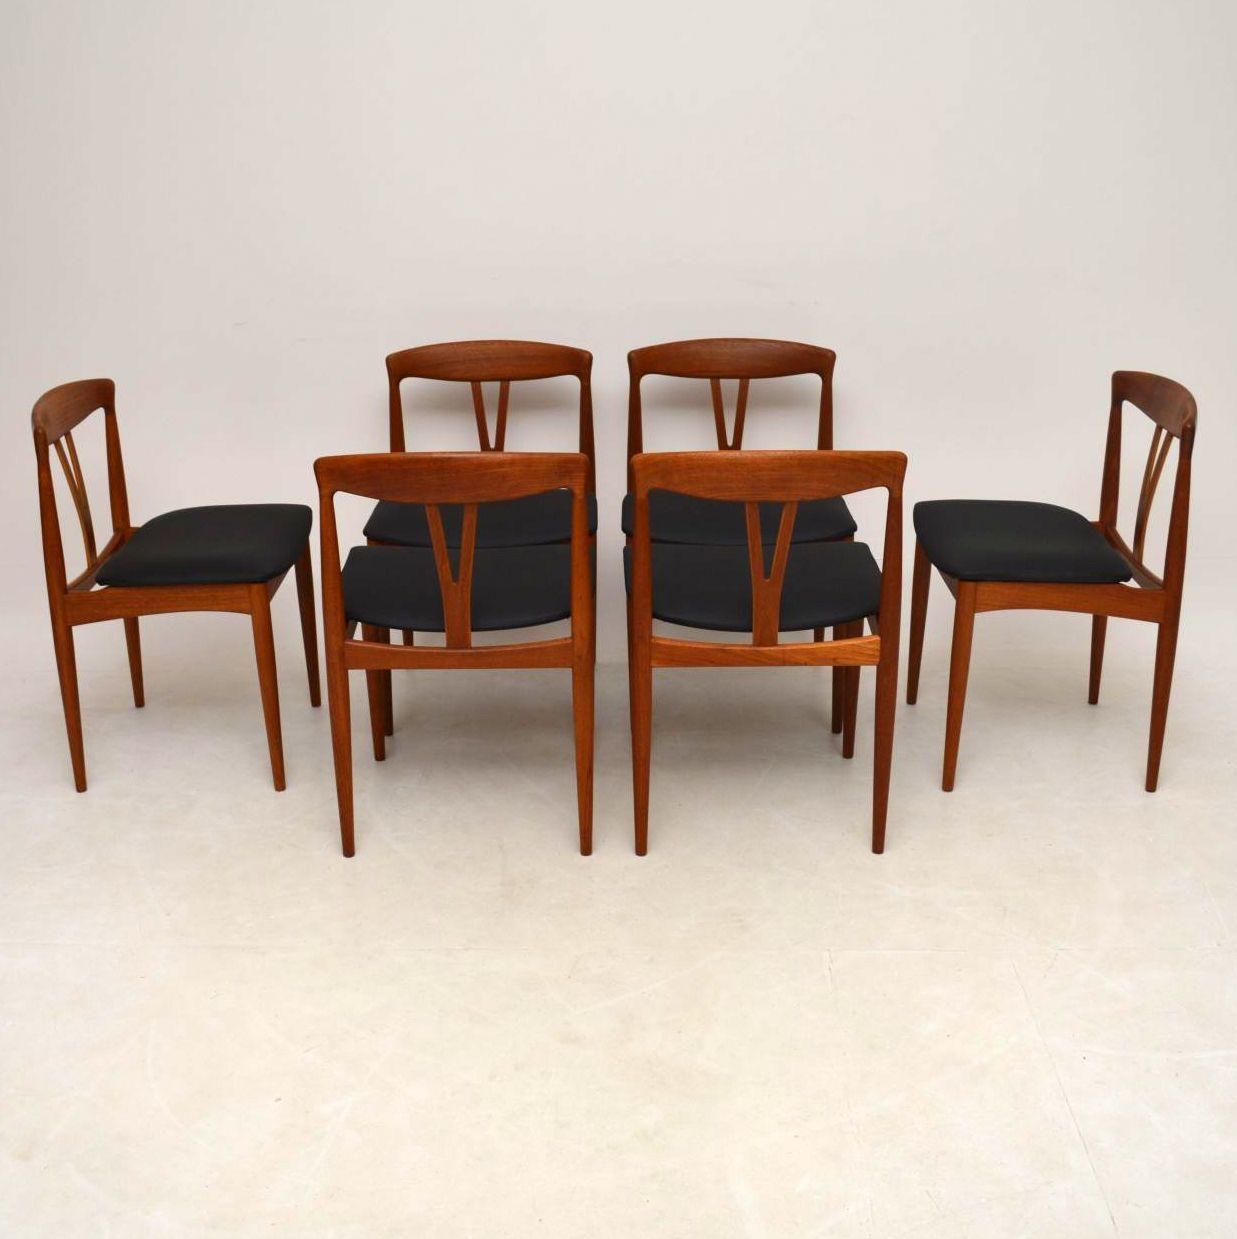 Retro Dining Chair Set Of 6 Danish Teak Retro Dining Chairs Vintage 1960s